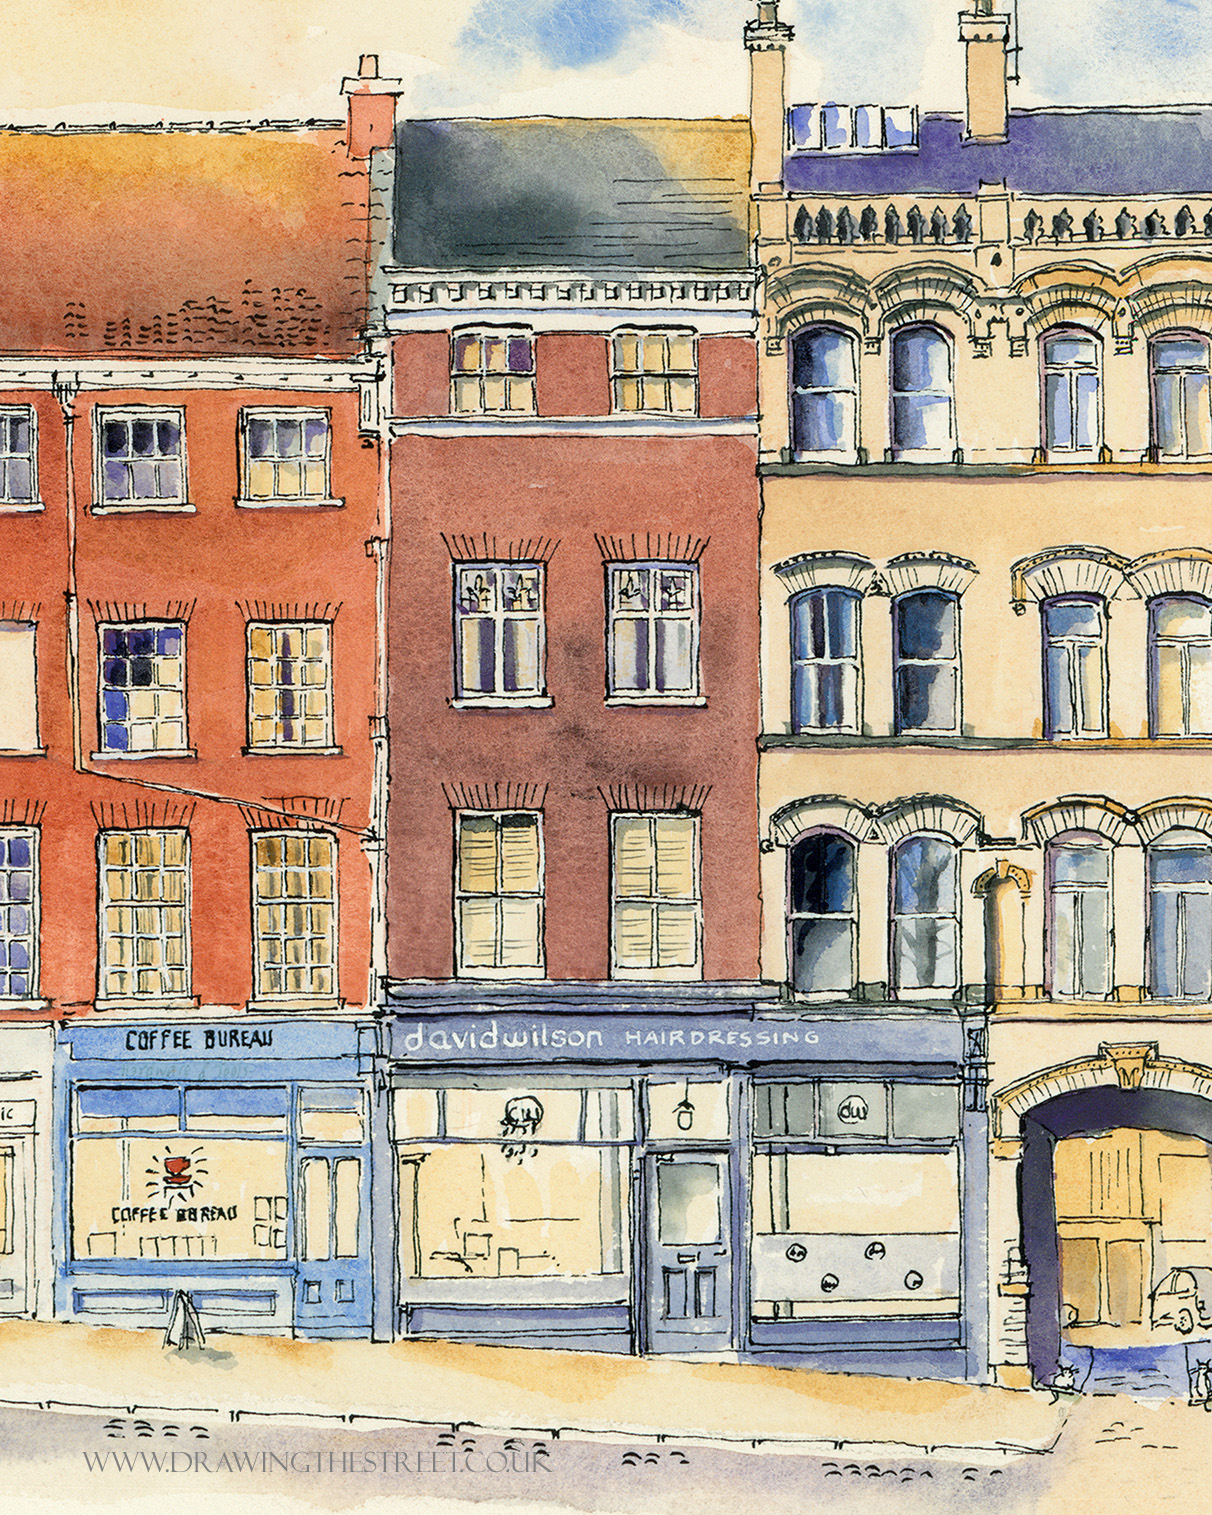 drawing by artist ronnie cruwys of David Wilson Hairdressing York